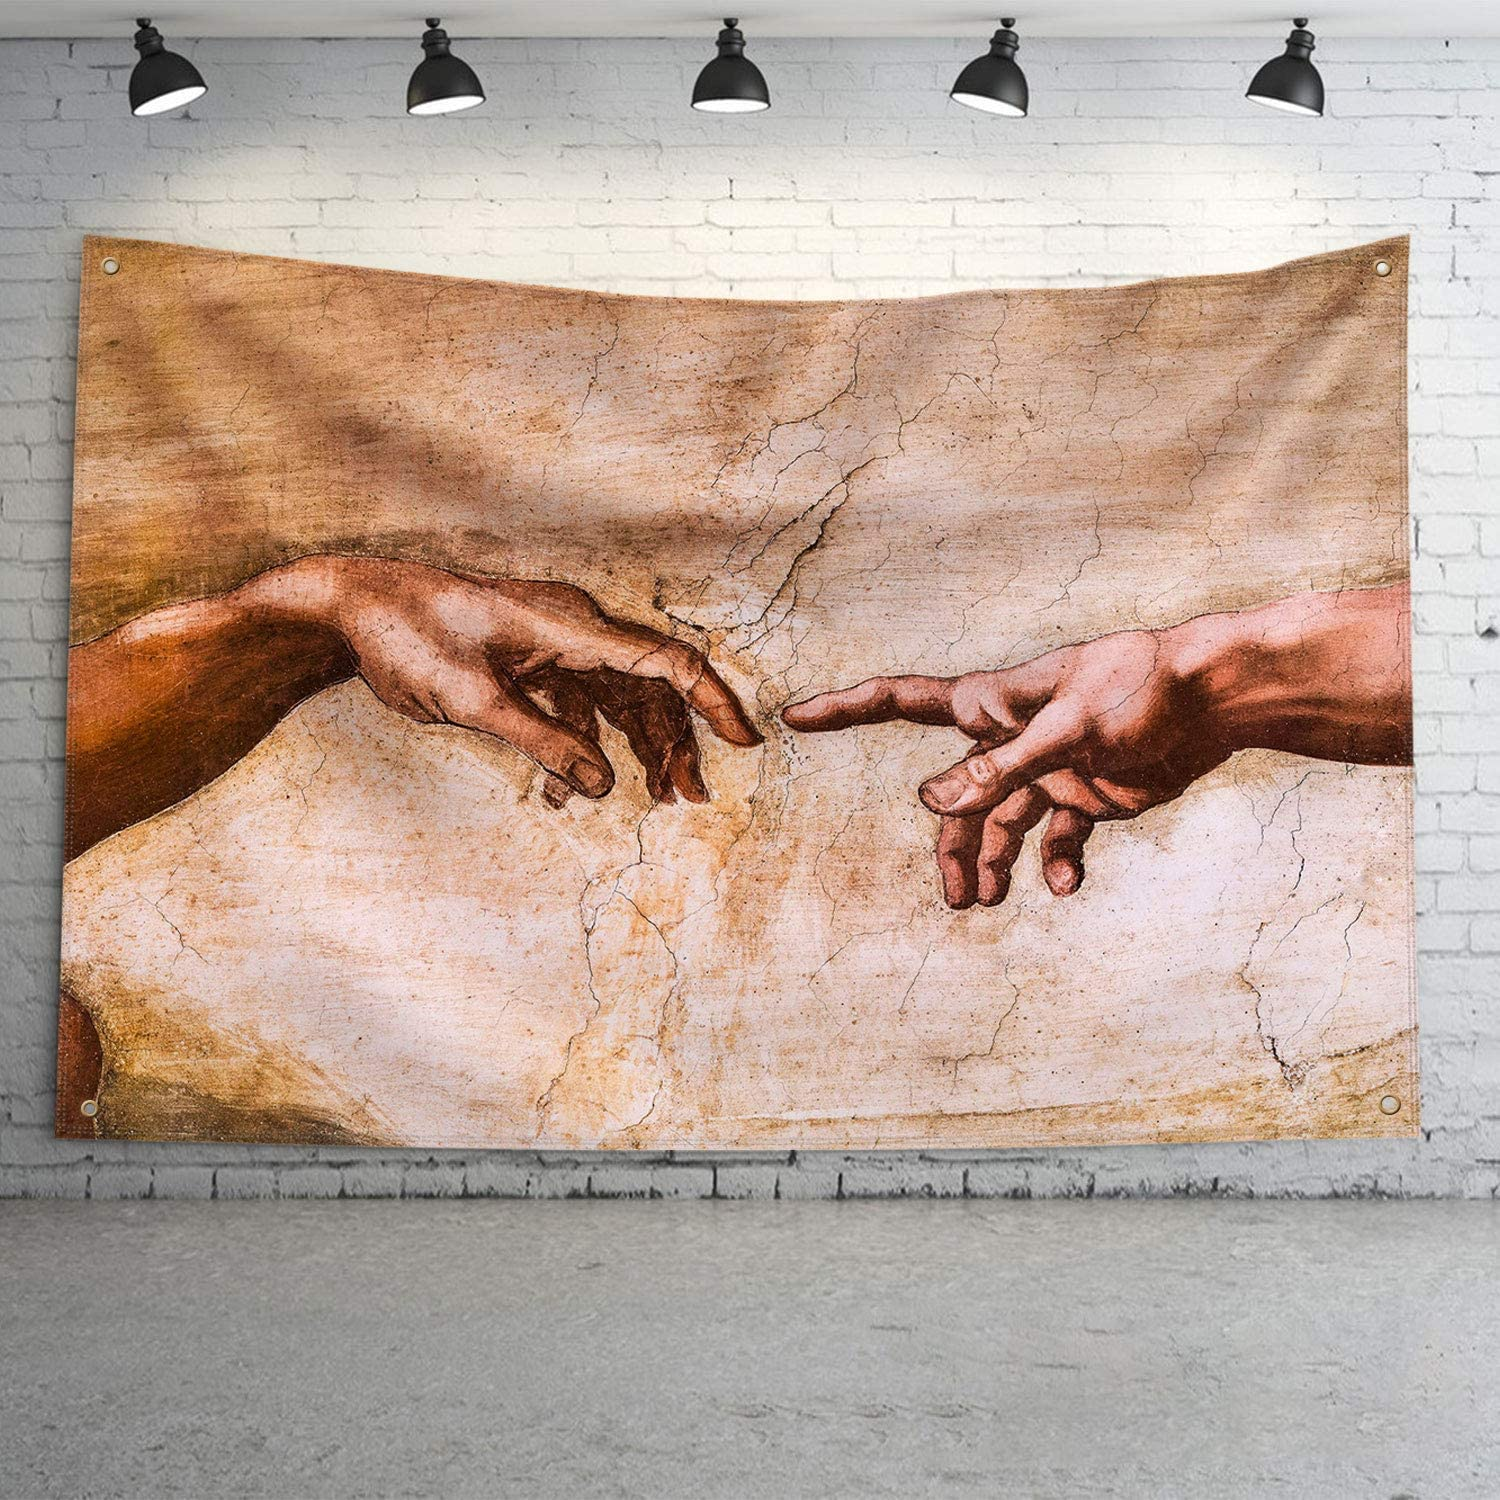 LONEA The Creation of Man - Hands by Michelangelo Buonarroti Banner Flag God and Adam Hands Art Print Poster with Brass Grommets for College Dorm Frat or Man Cave 3x5 Ft